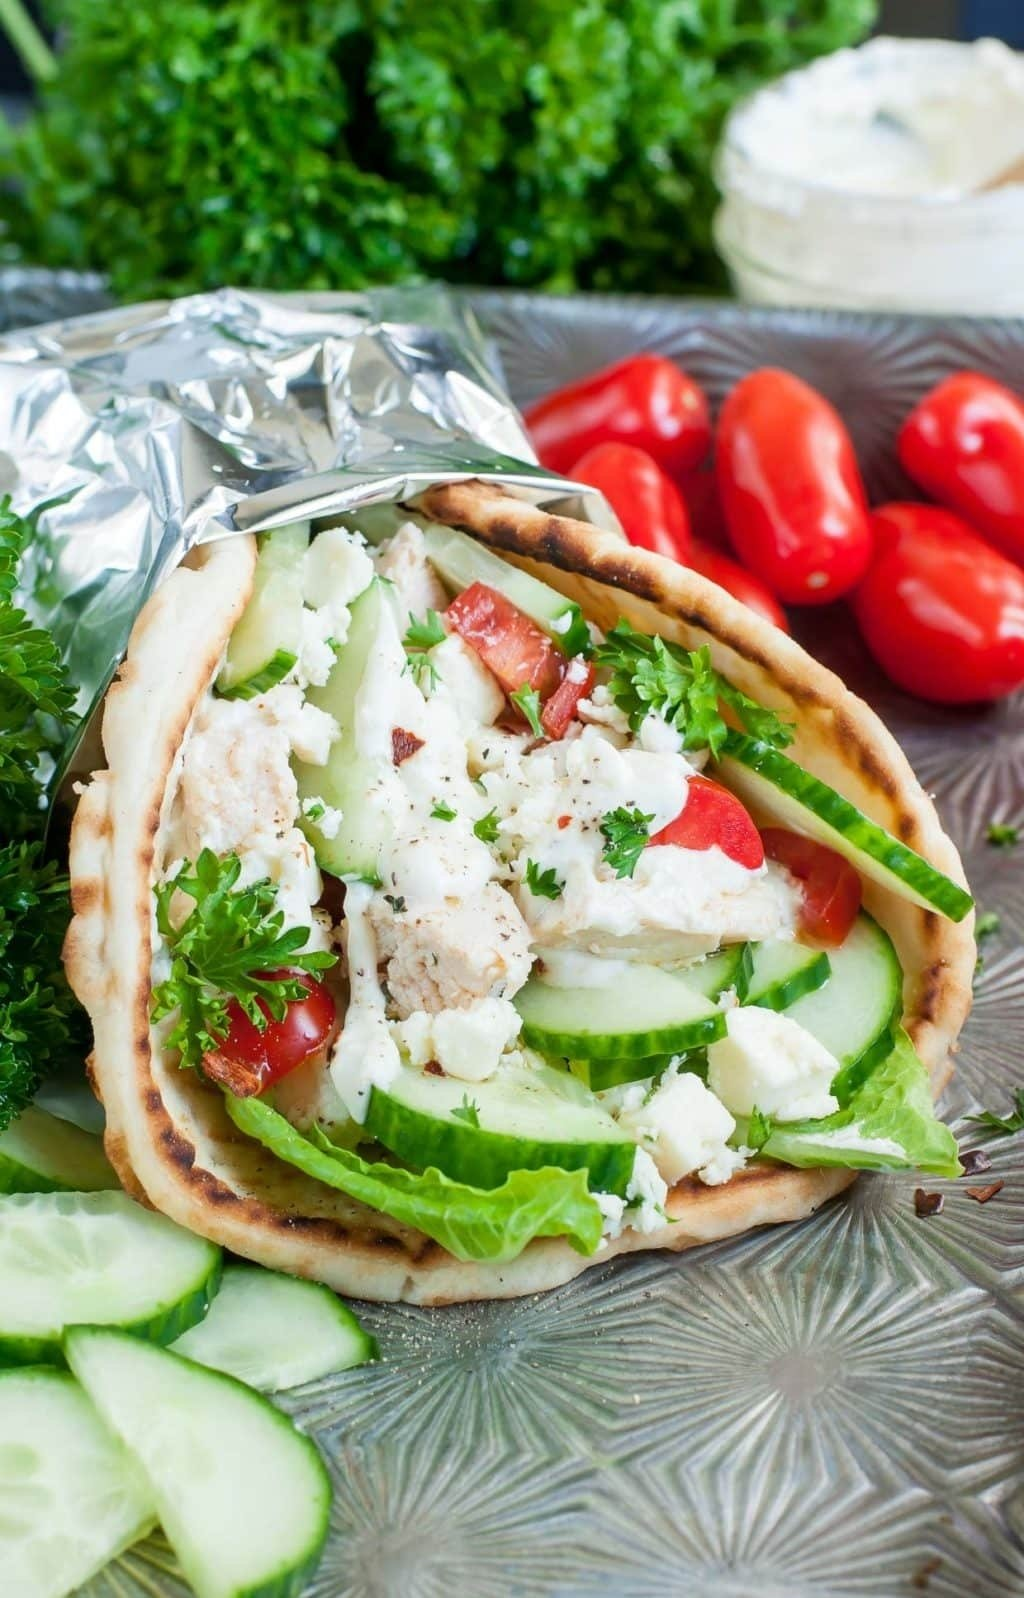 10 Lovable Vegetarian Brown Bag Lunch Ideas 11 easy chicken brown bag lunch ideas trim your budget 2020